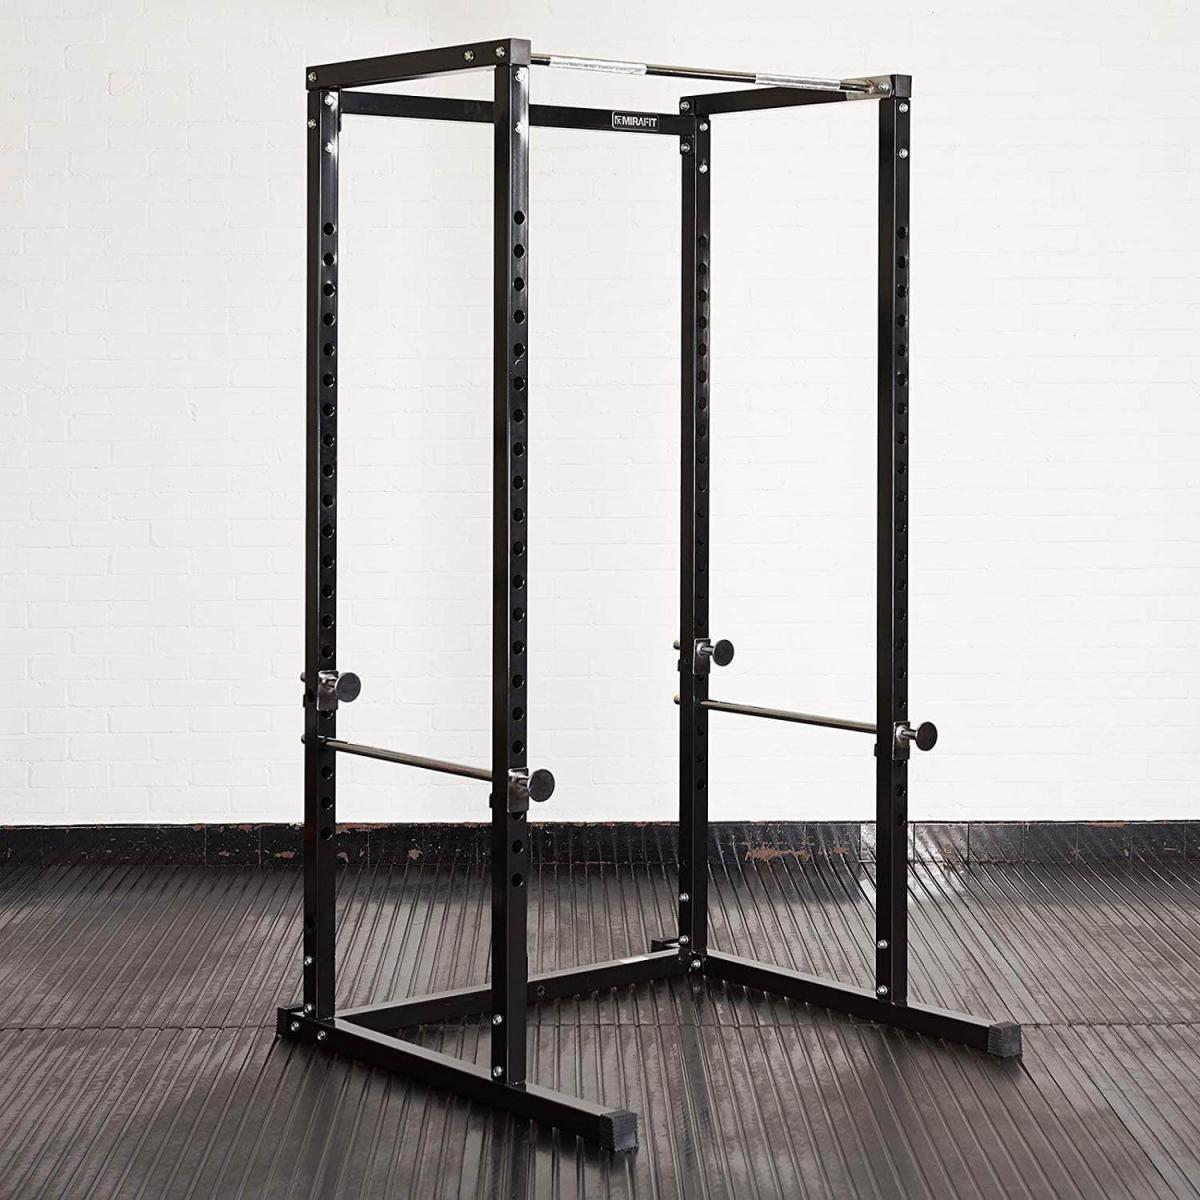 Mirafit Power Rack Weight Lifting Cage & Pull Up Bar Review